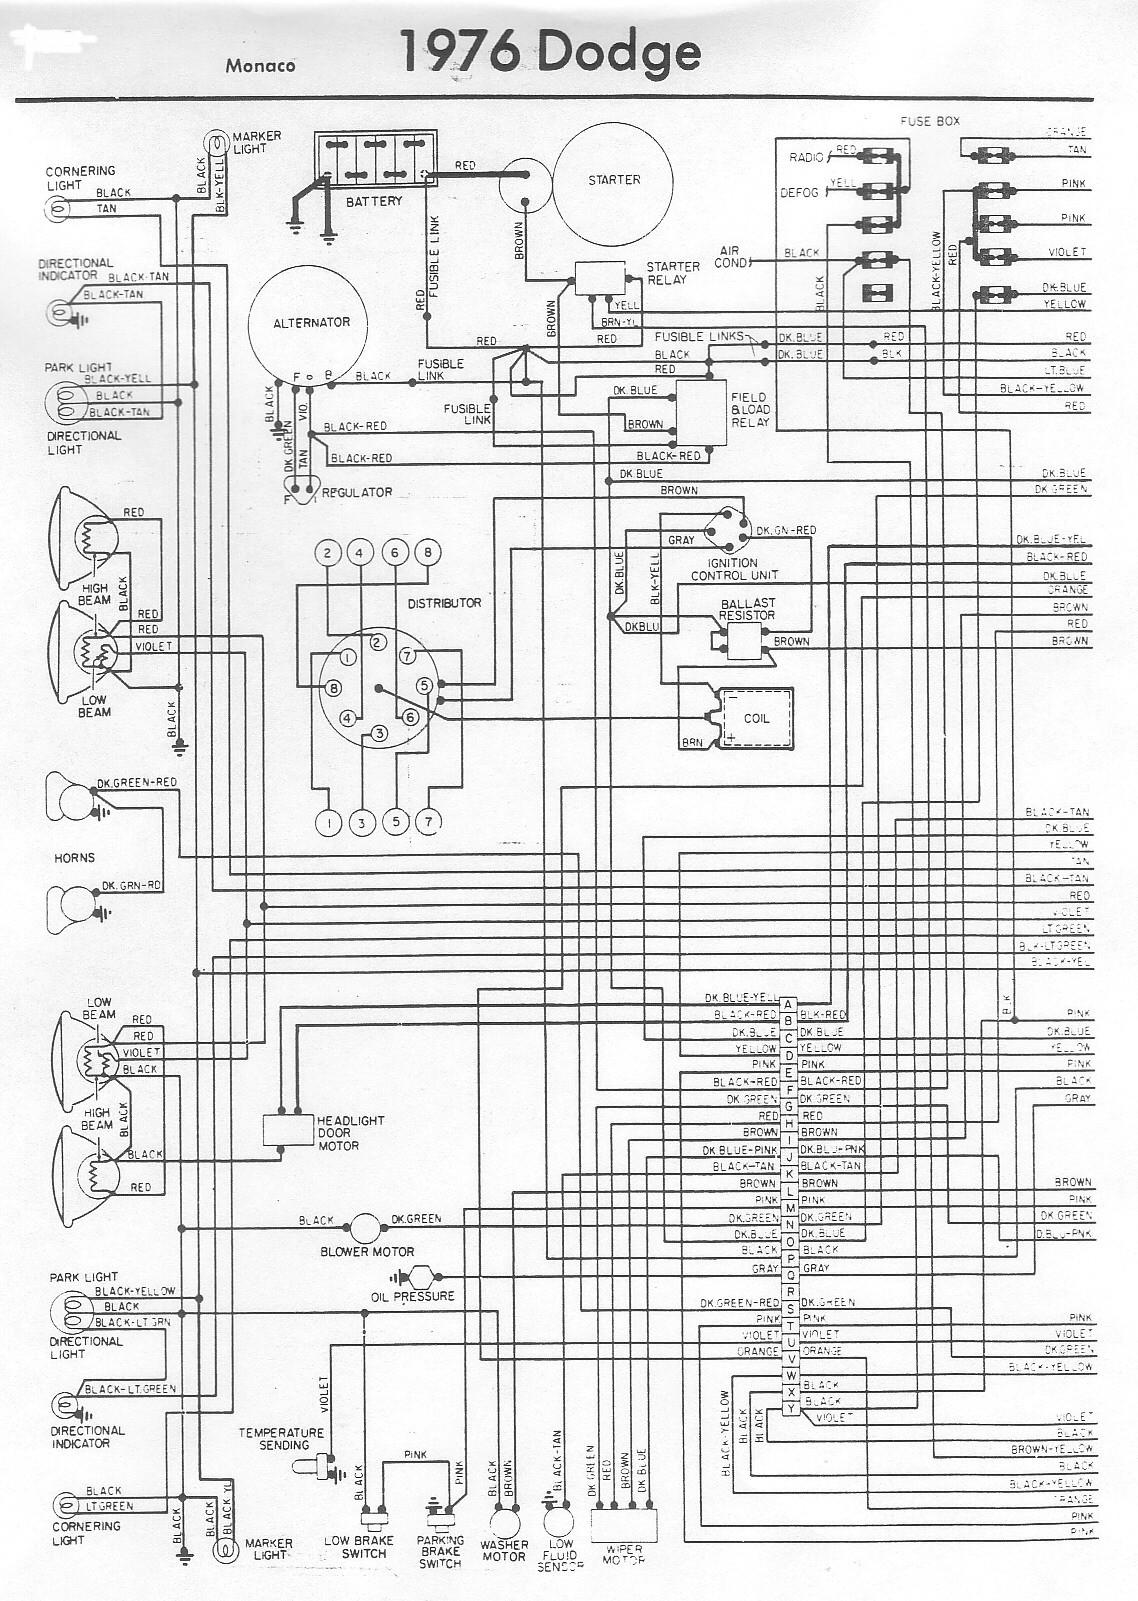 Diagram  2000 Monaco Dynasty Wiring Diagram Full Version